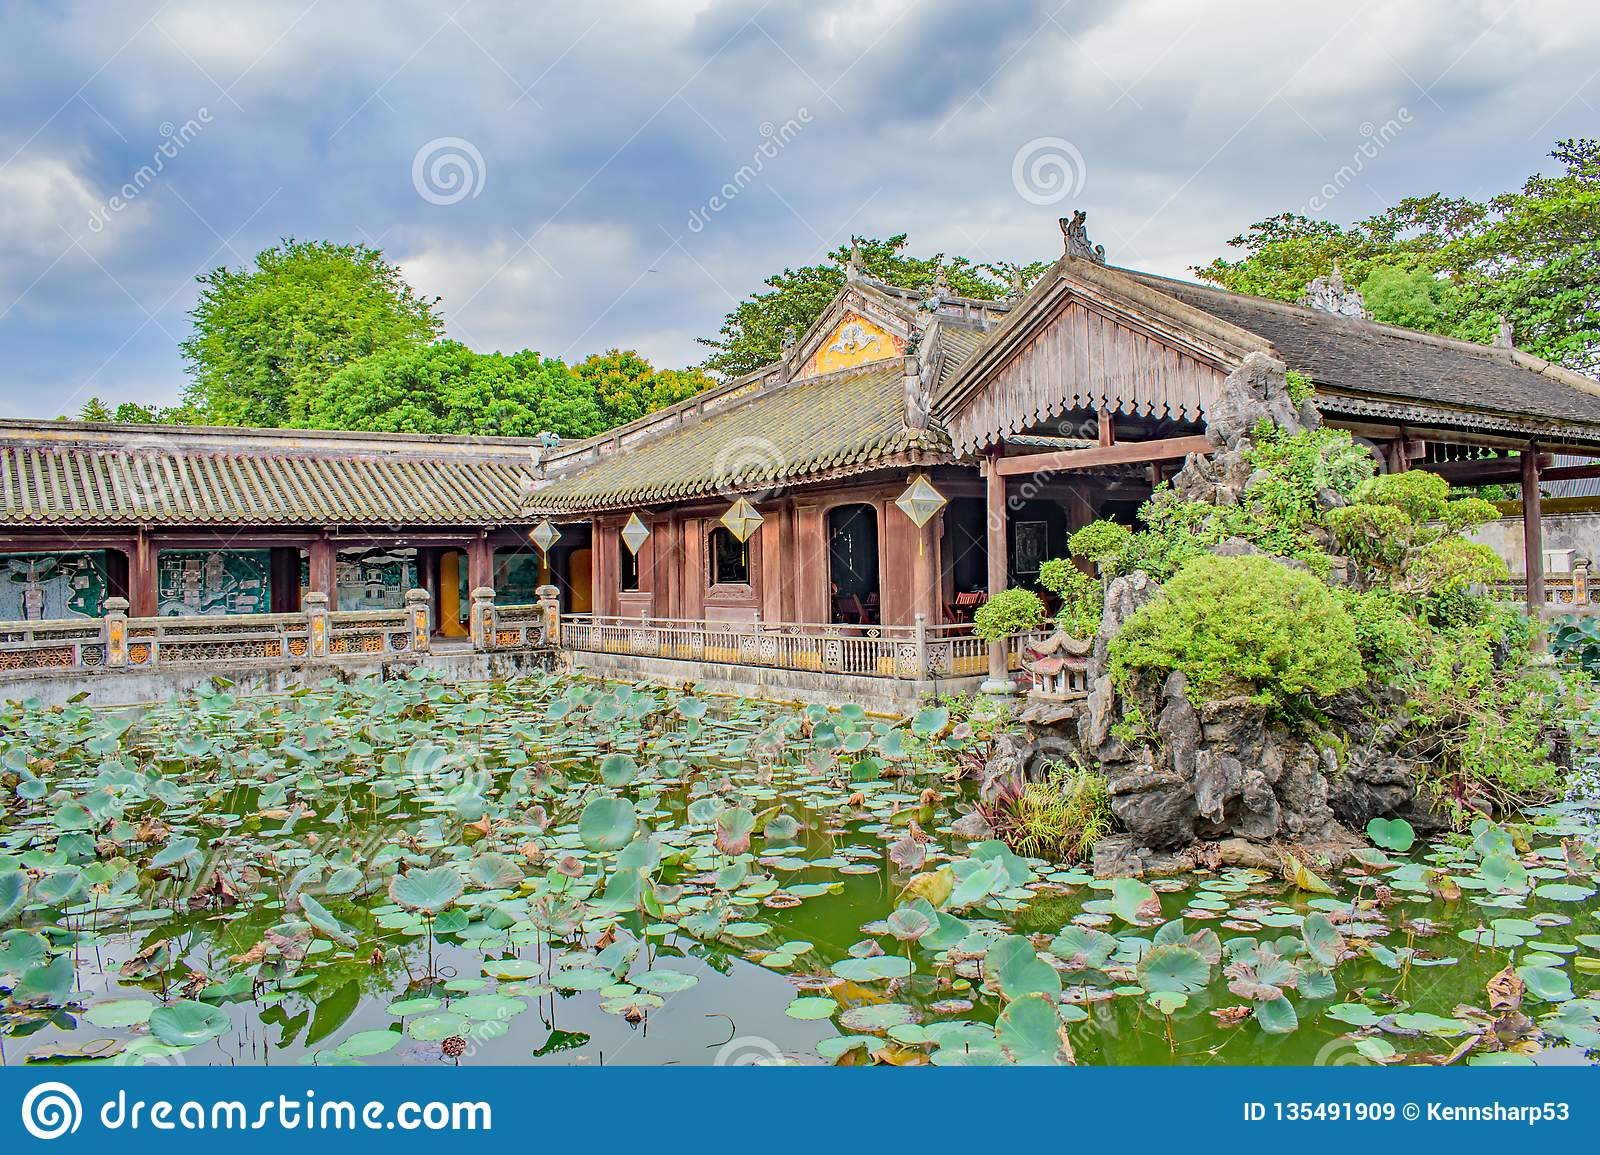 The Lily Pond at Tomb of Emperor Minh Mang,Vietnam